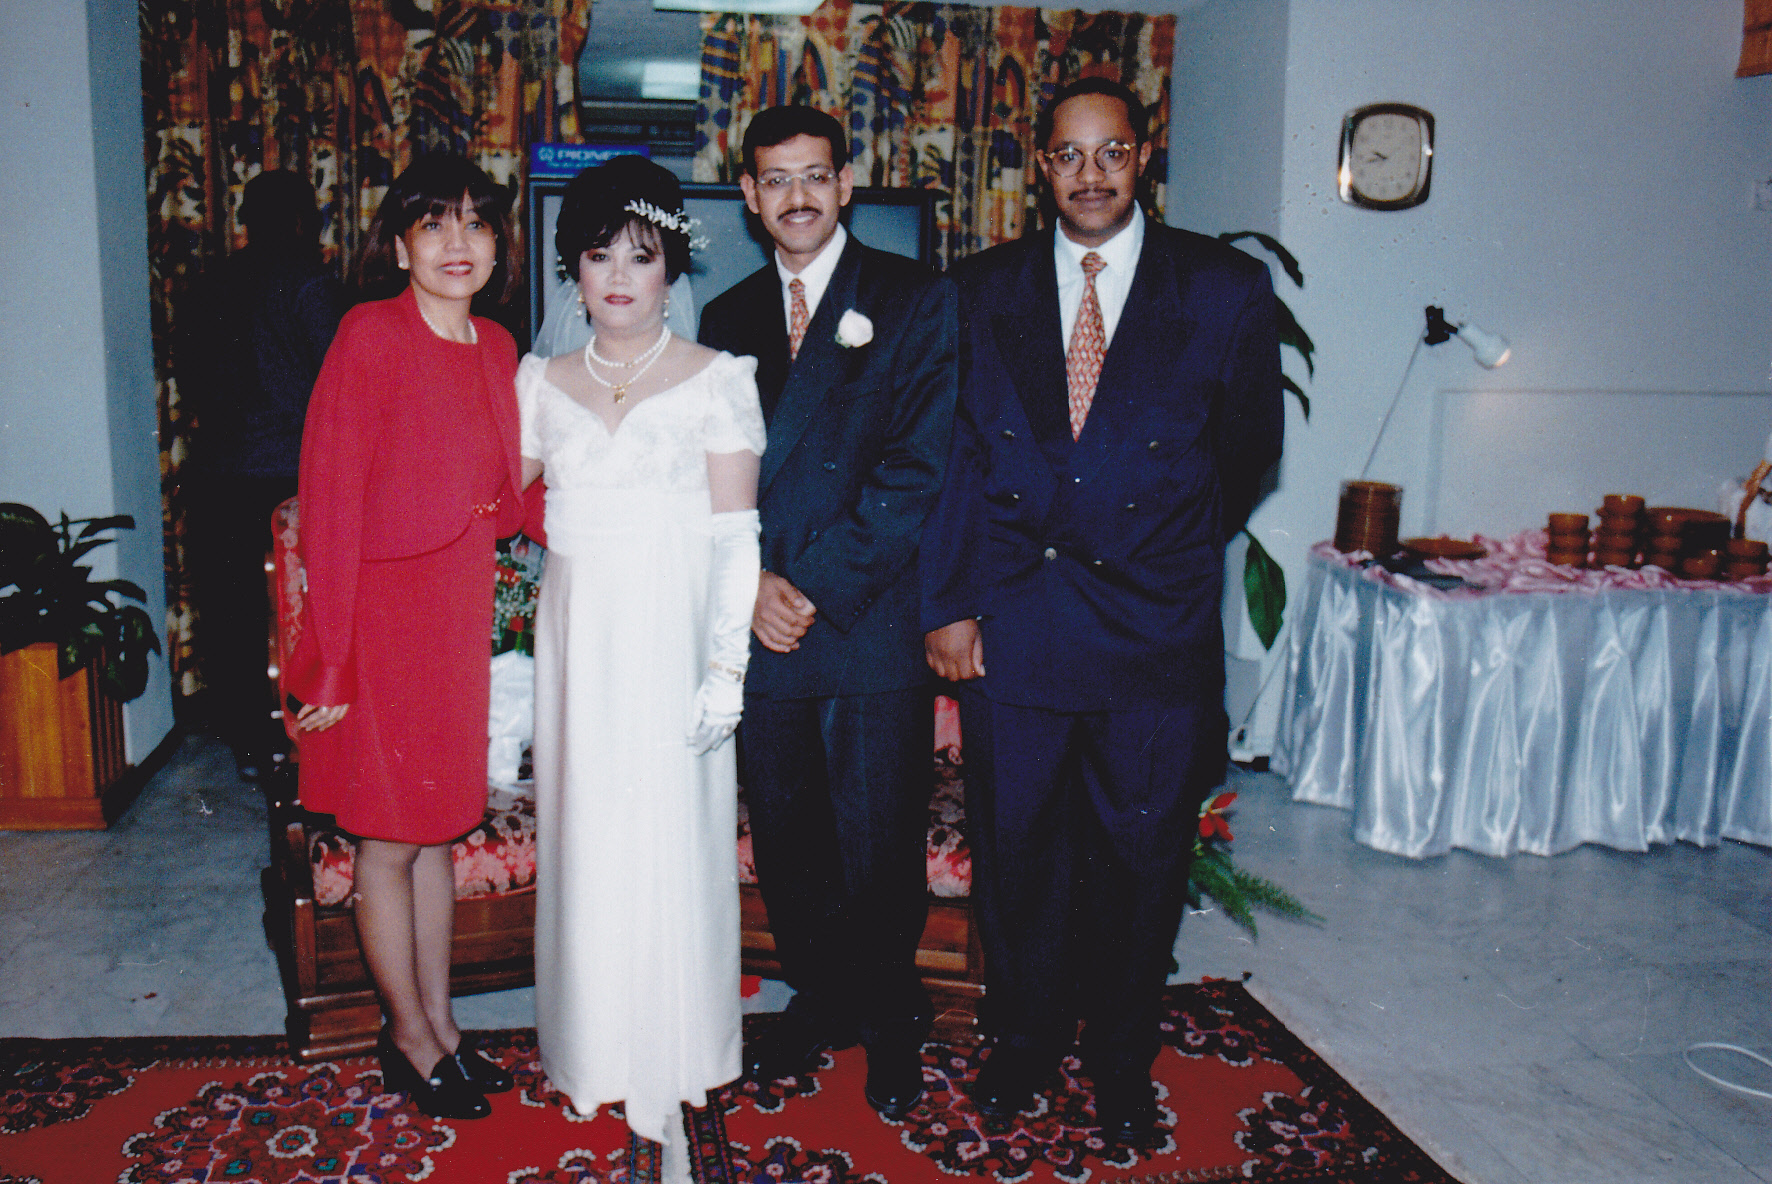 Ofie was the emcee during a brief program which commenced after I arrived. I actually arrived with her, bringing with us, staright from her place, the two red sofas Waleed and I sat on. This was during the celebration of my wedding to Waleed held February 16, 1997.